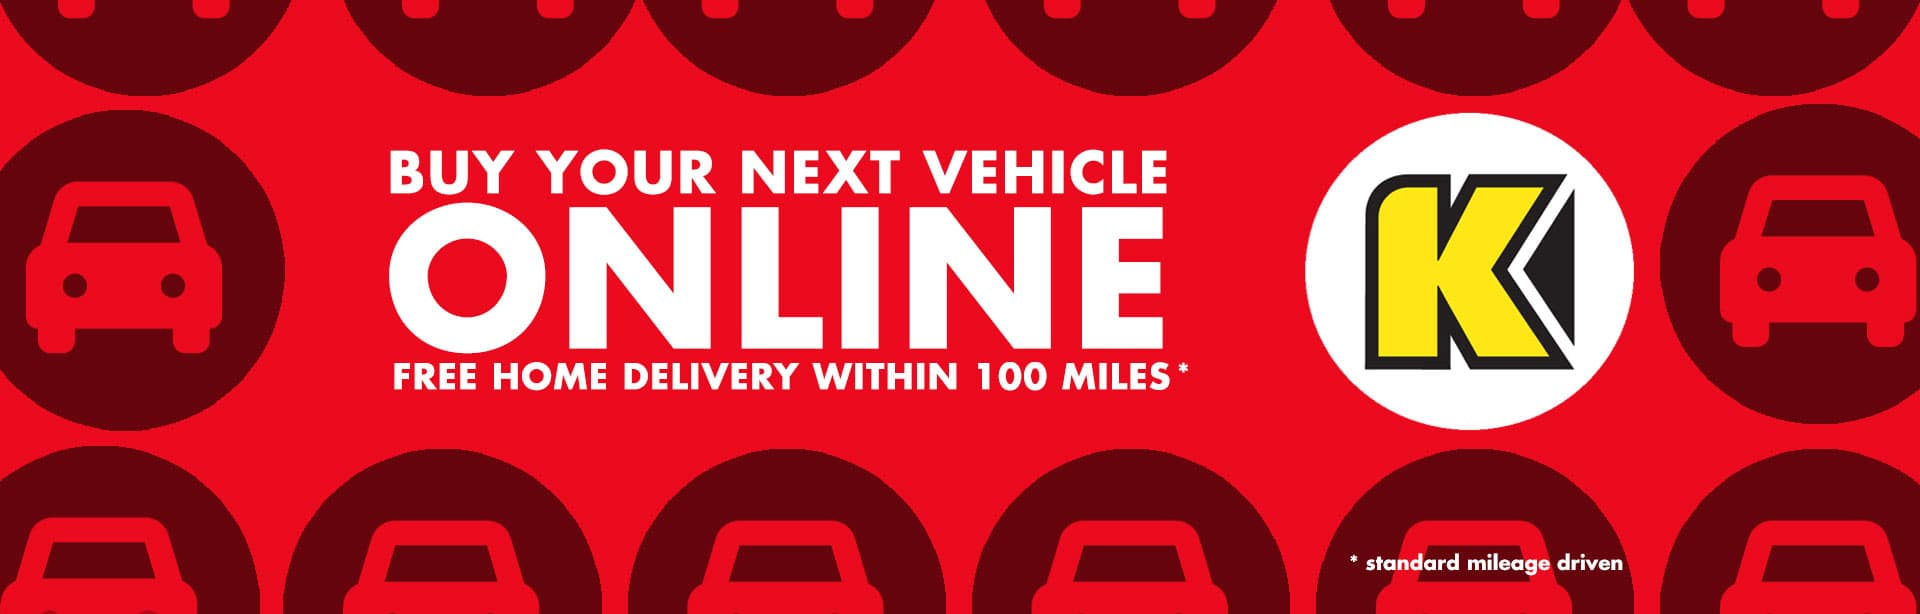 Toyota Home delivery from Kendall Toyota